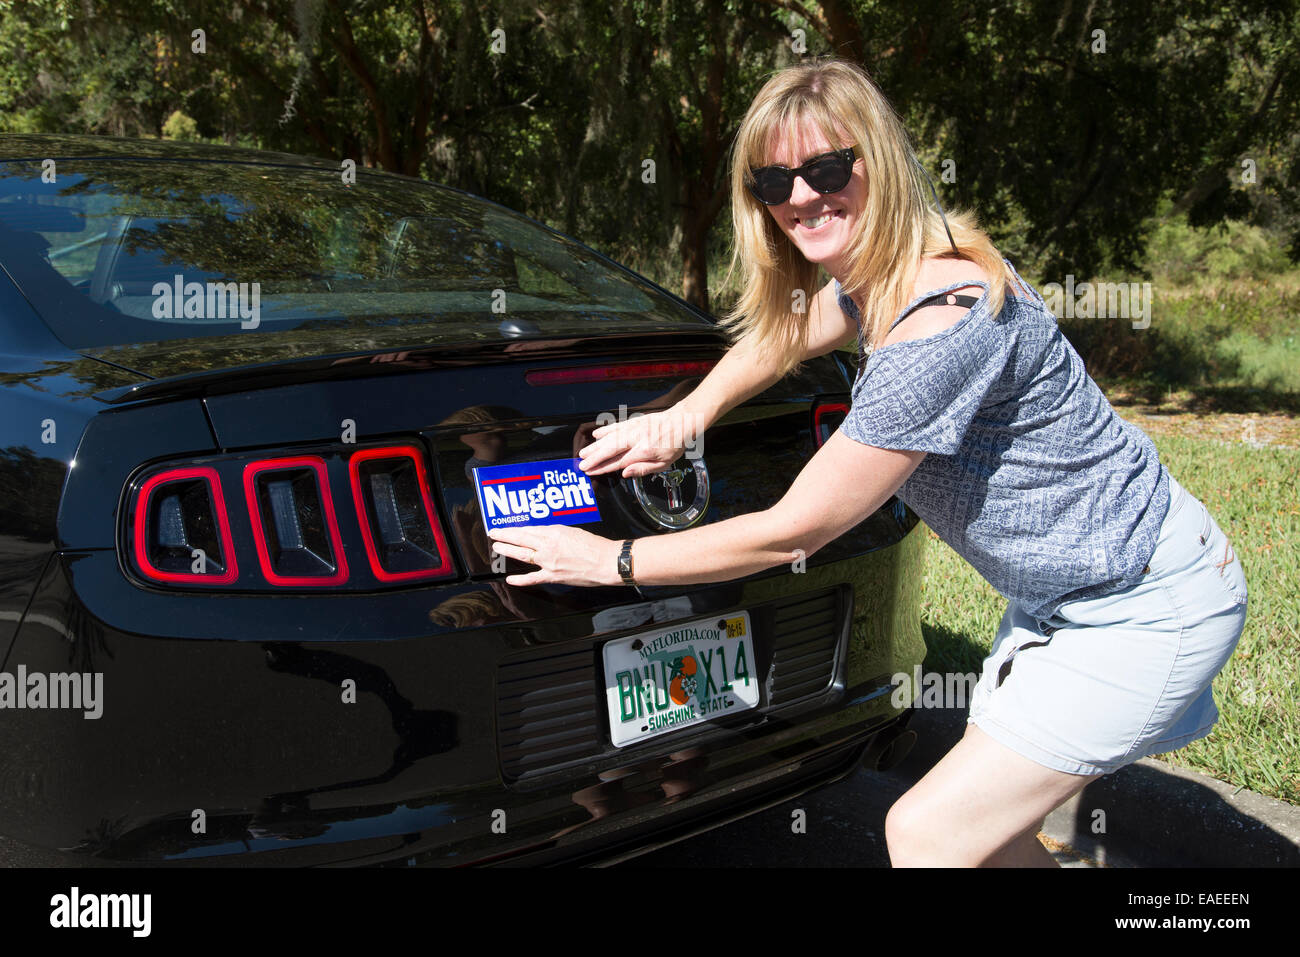 Political supporter puts bumper sticker on her American car Rich Nuggent congressman elect - Stock Image